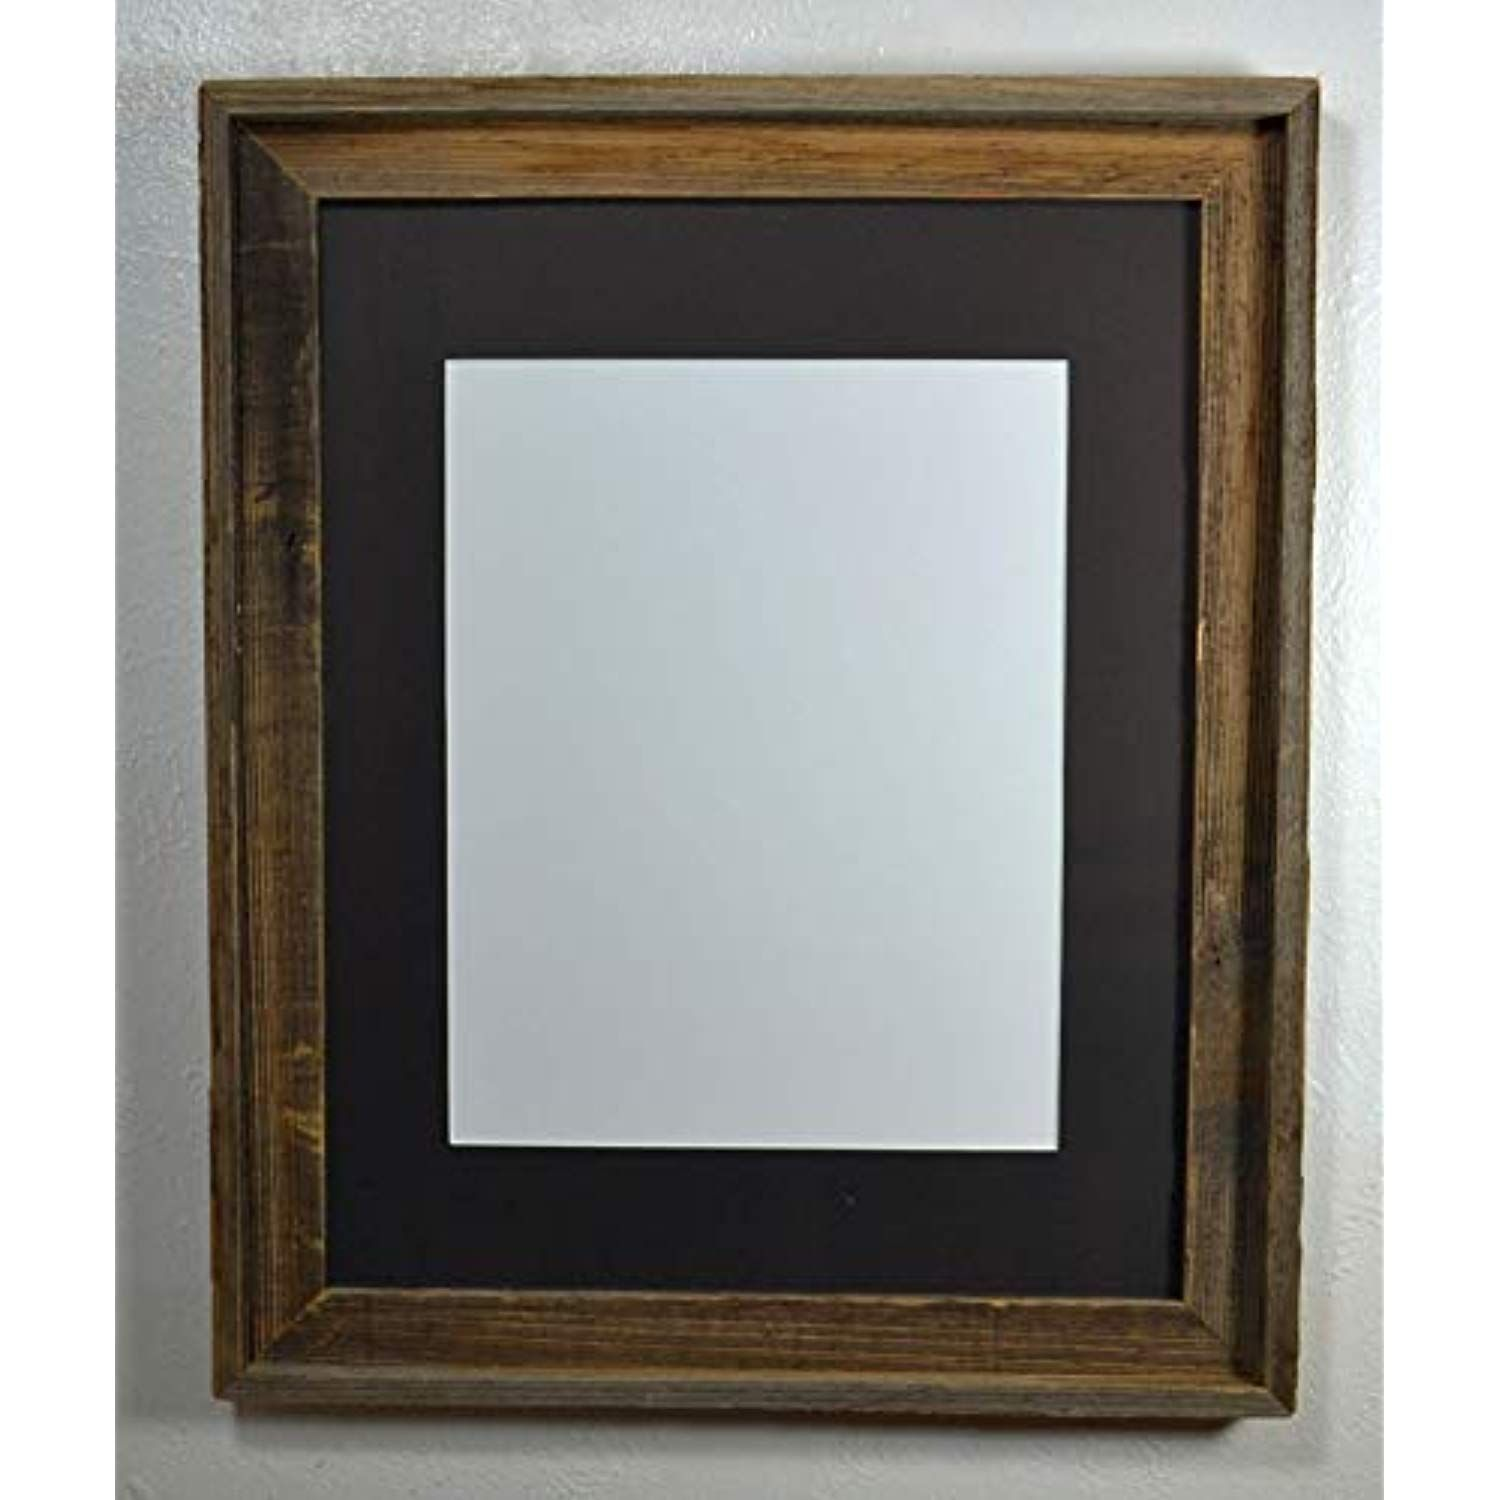 11x14 Display Frame Black Mat Reclaimed Wood With Glass And Installed Hardware Want Addi Reclaimed Wood Picture Frames Wooden Picture Frames Wooden Picture